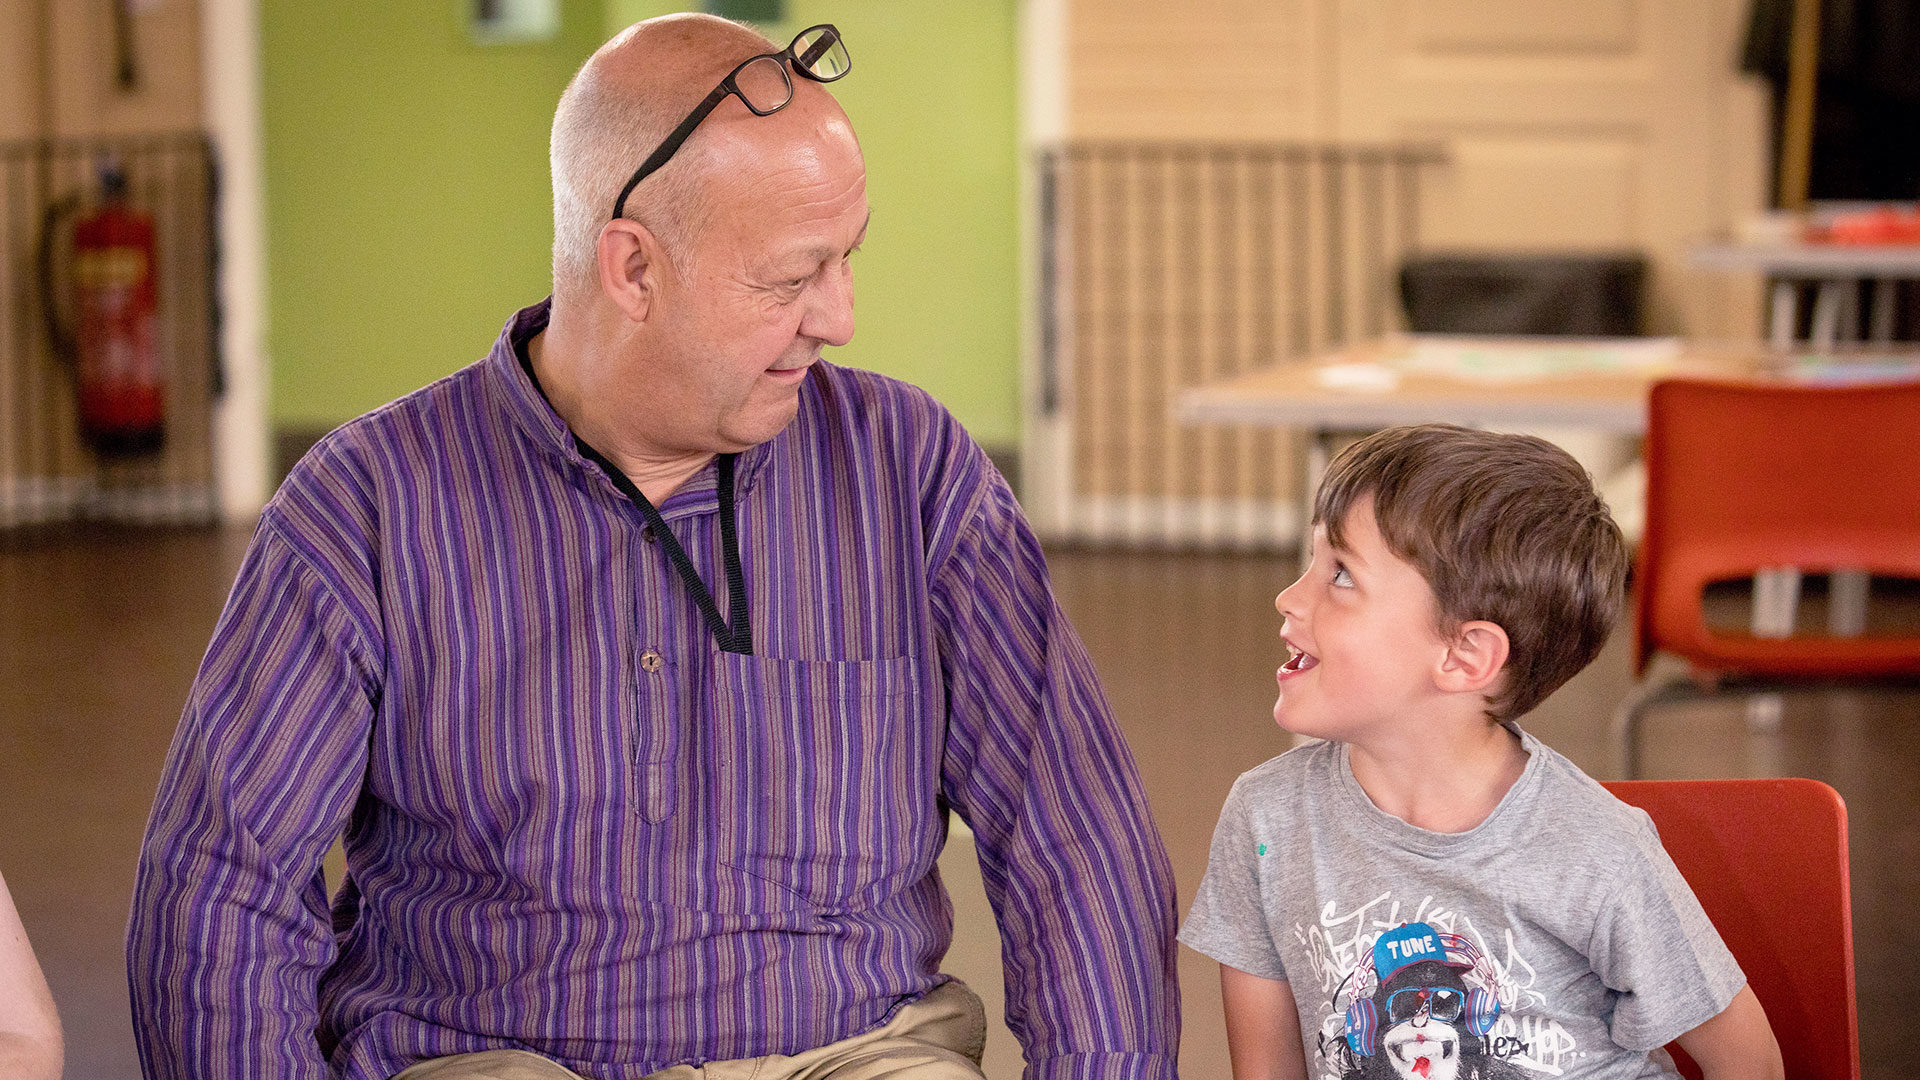 Young boy laughing at an older male volunteer in a group session